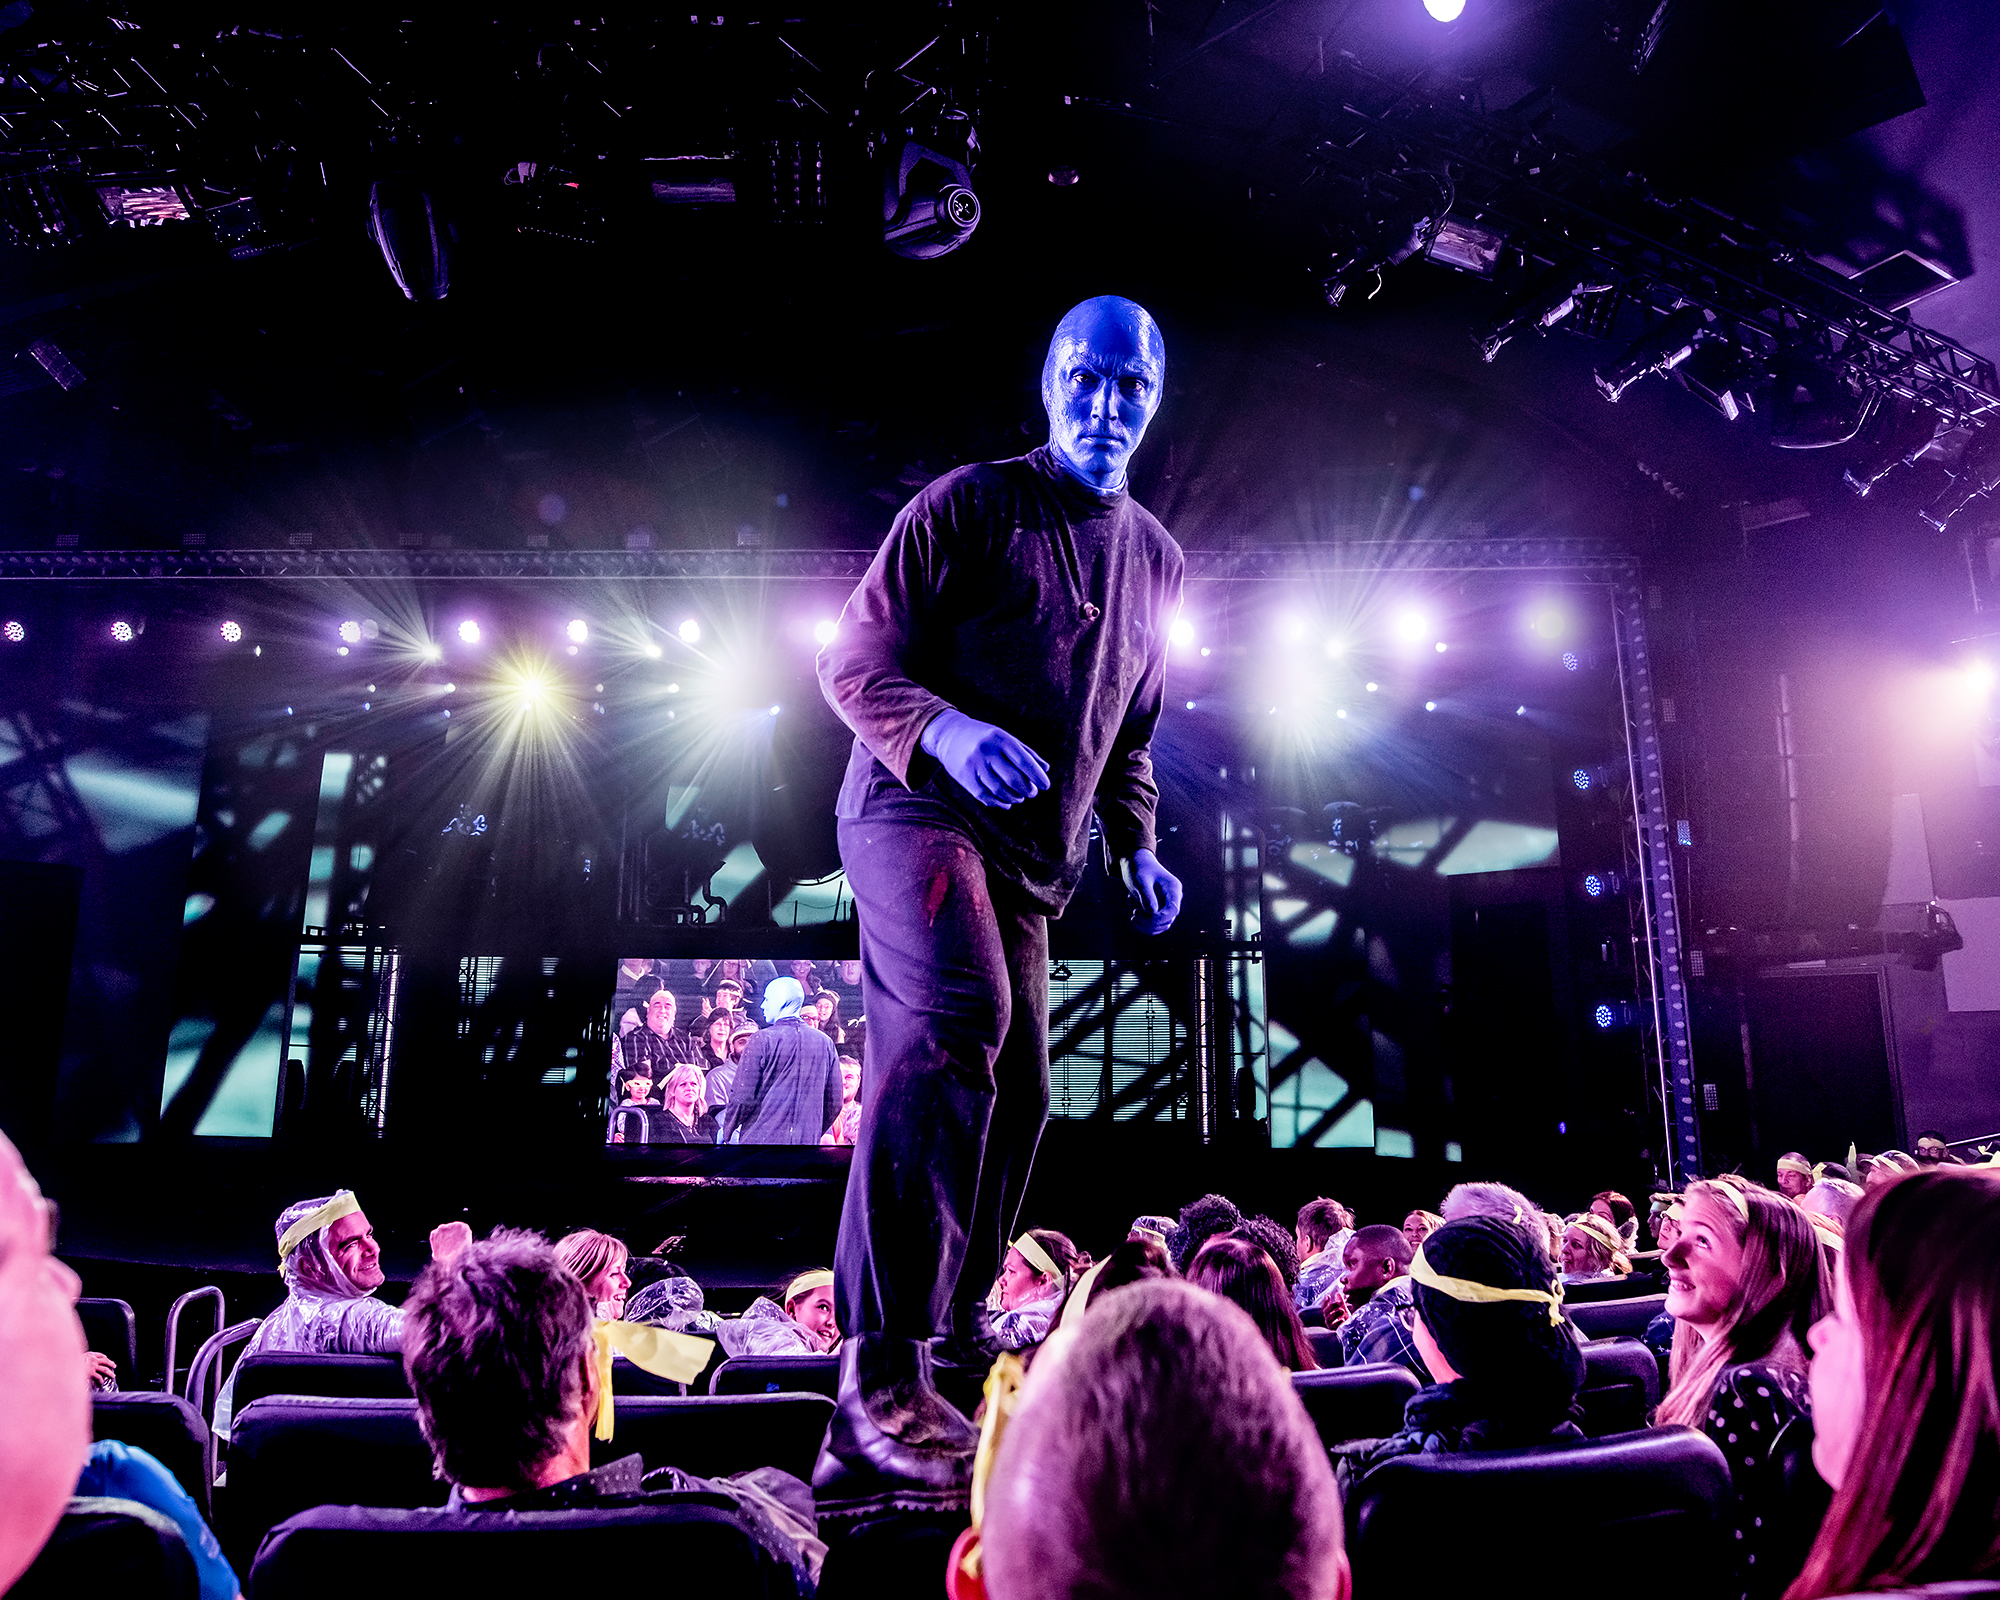 BlueMan_photo_ChairWalking_2000x1600.jpg.jpg